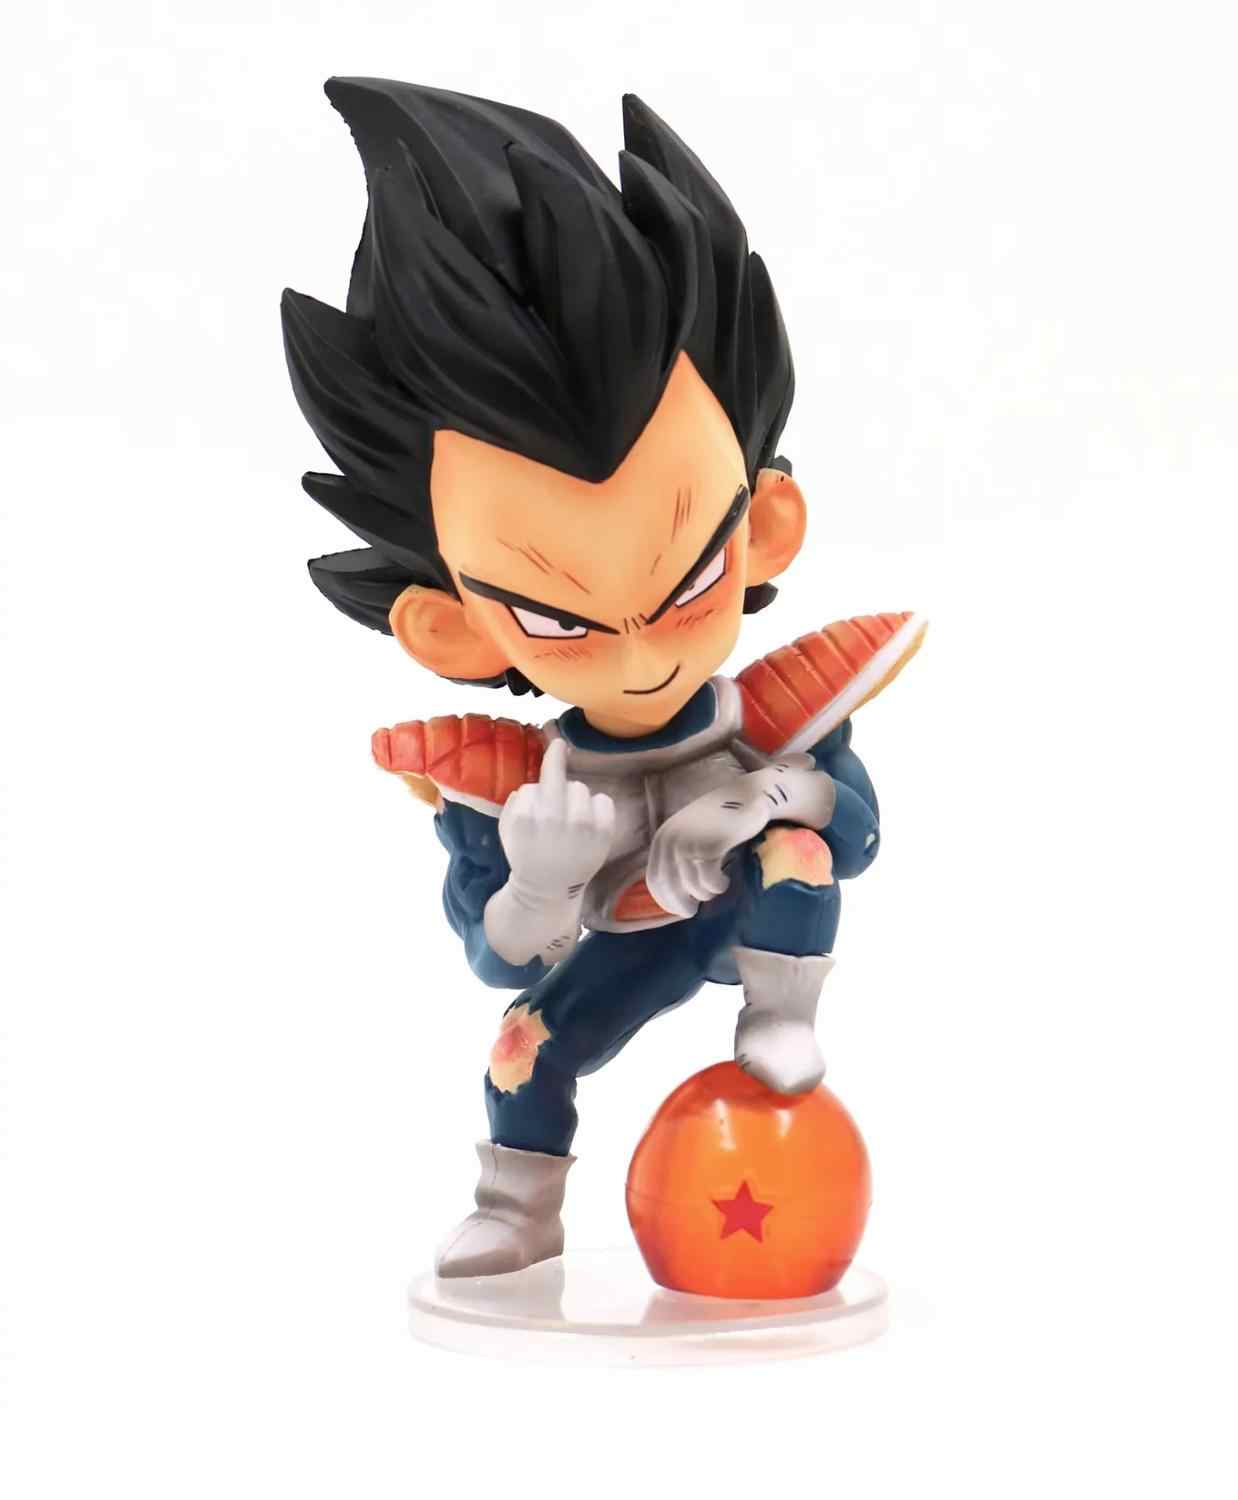 Anime 15cm Dragon Ball Z Super Saiyan Vegeta Childhood middle finger Ver PVC Action Figure Collectible Model doll toys Gift